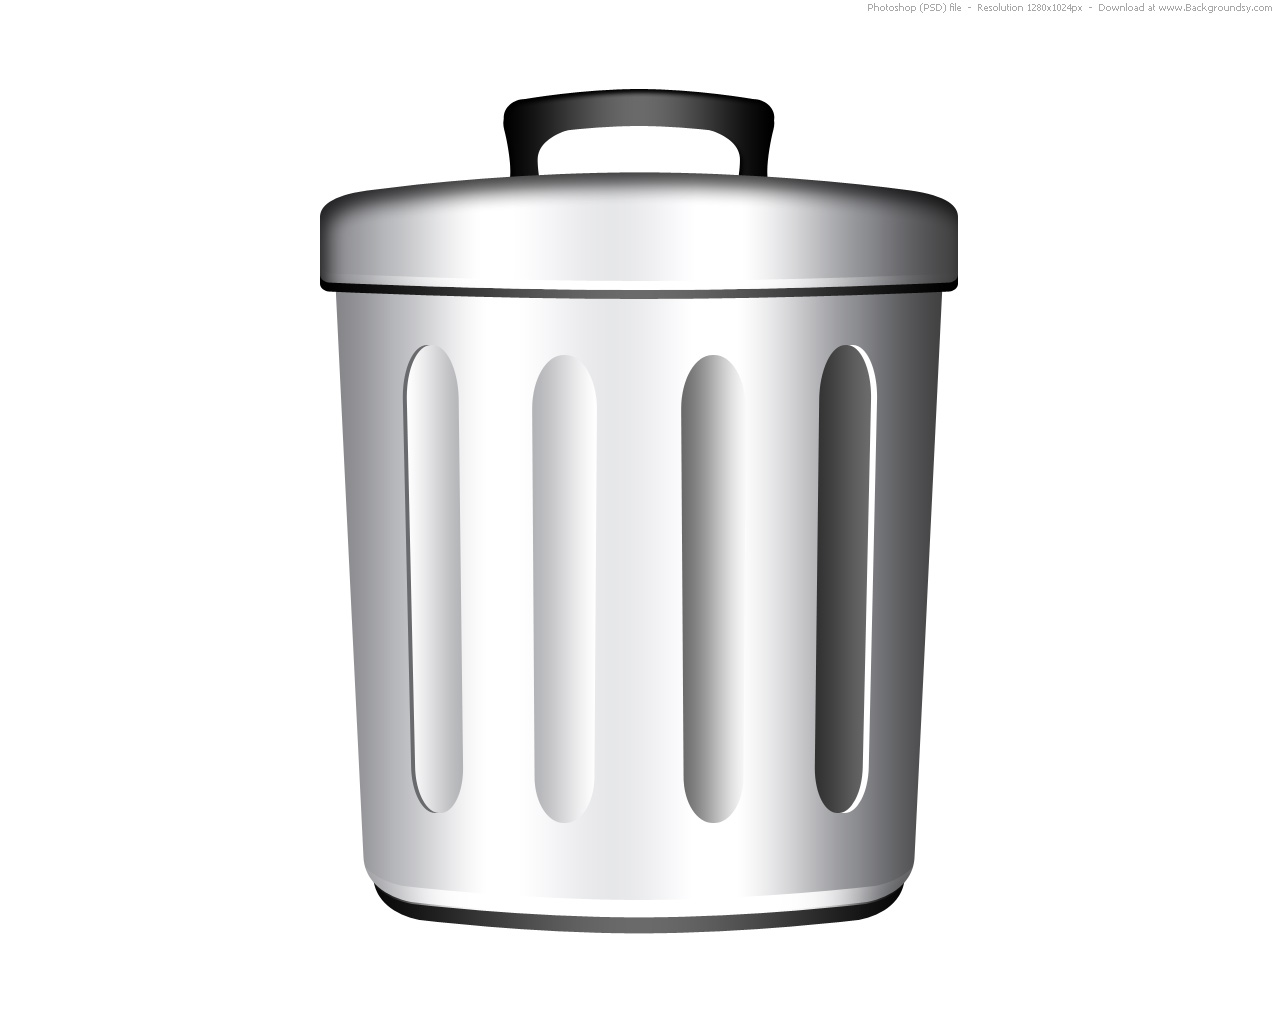 Transparent background clipart trash can royalty free stock Free Transparent Trash Can, Download Free Clip Art, Free ... royalty free stock